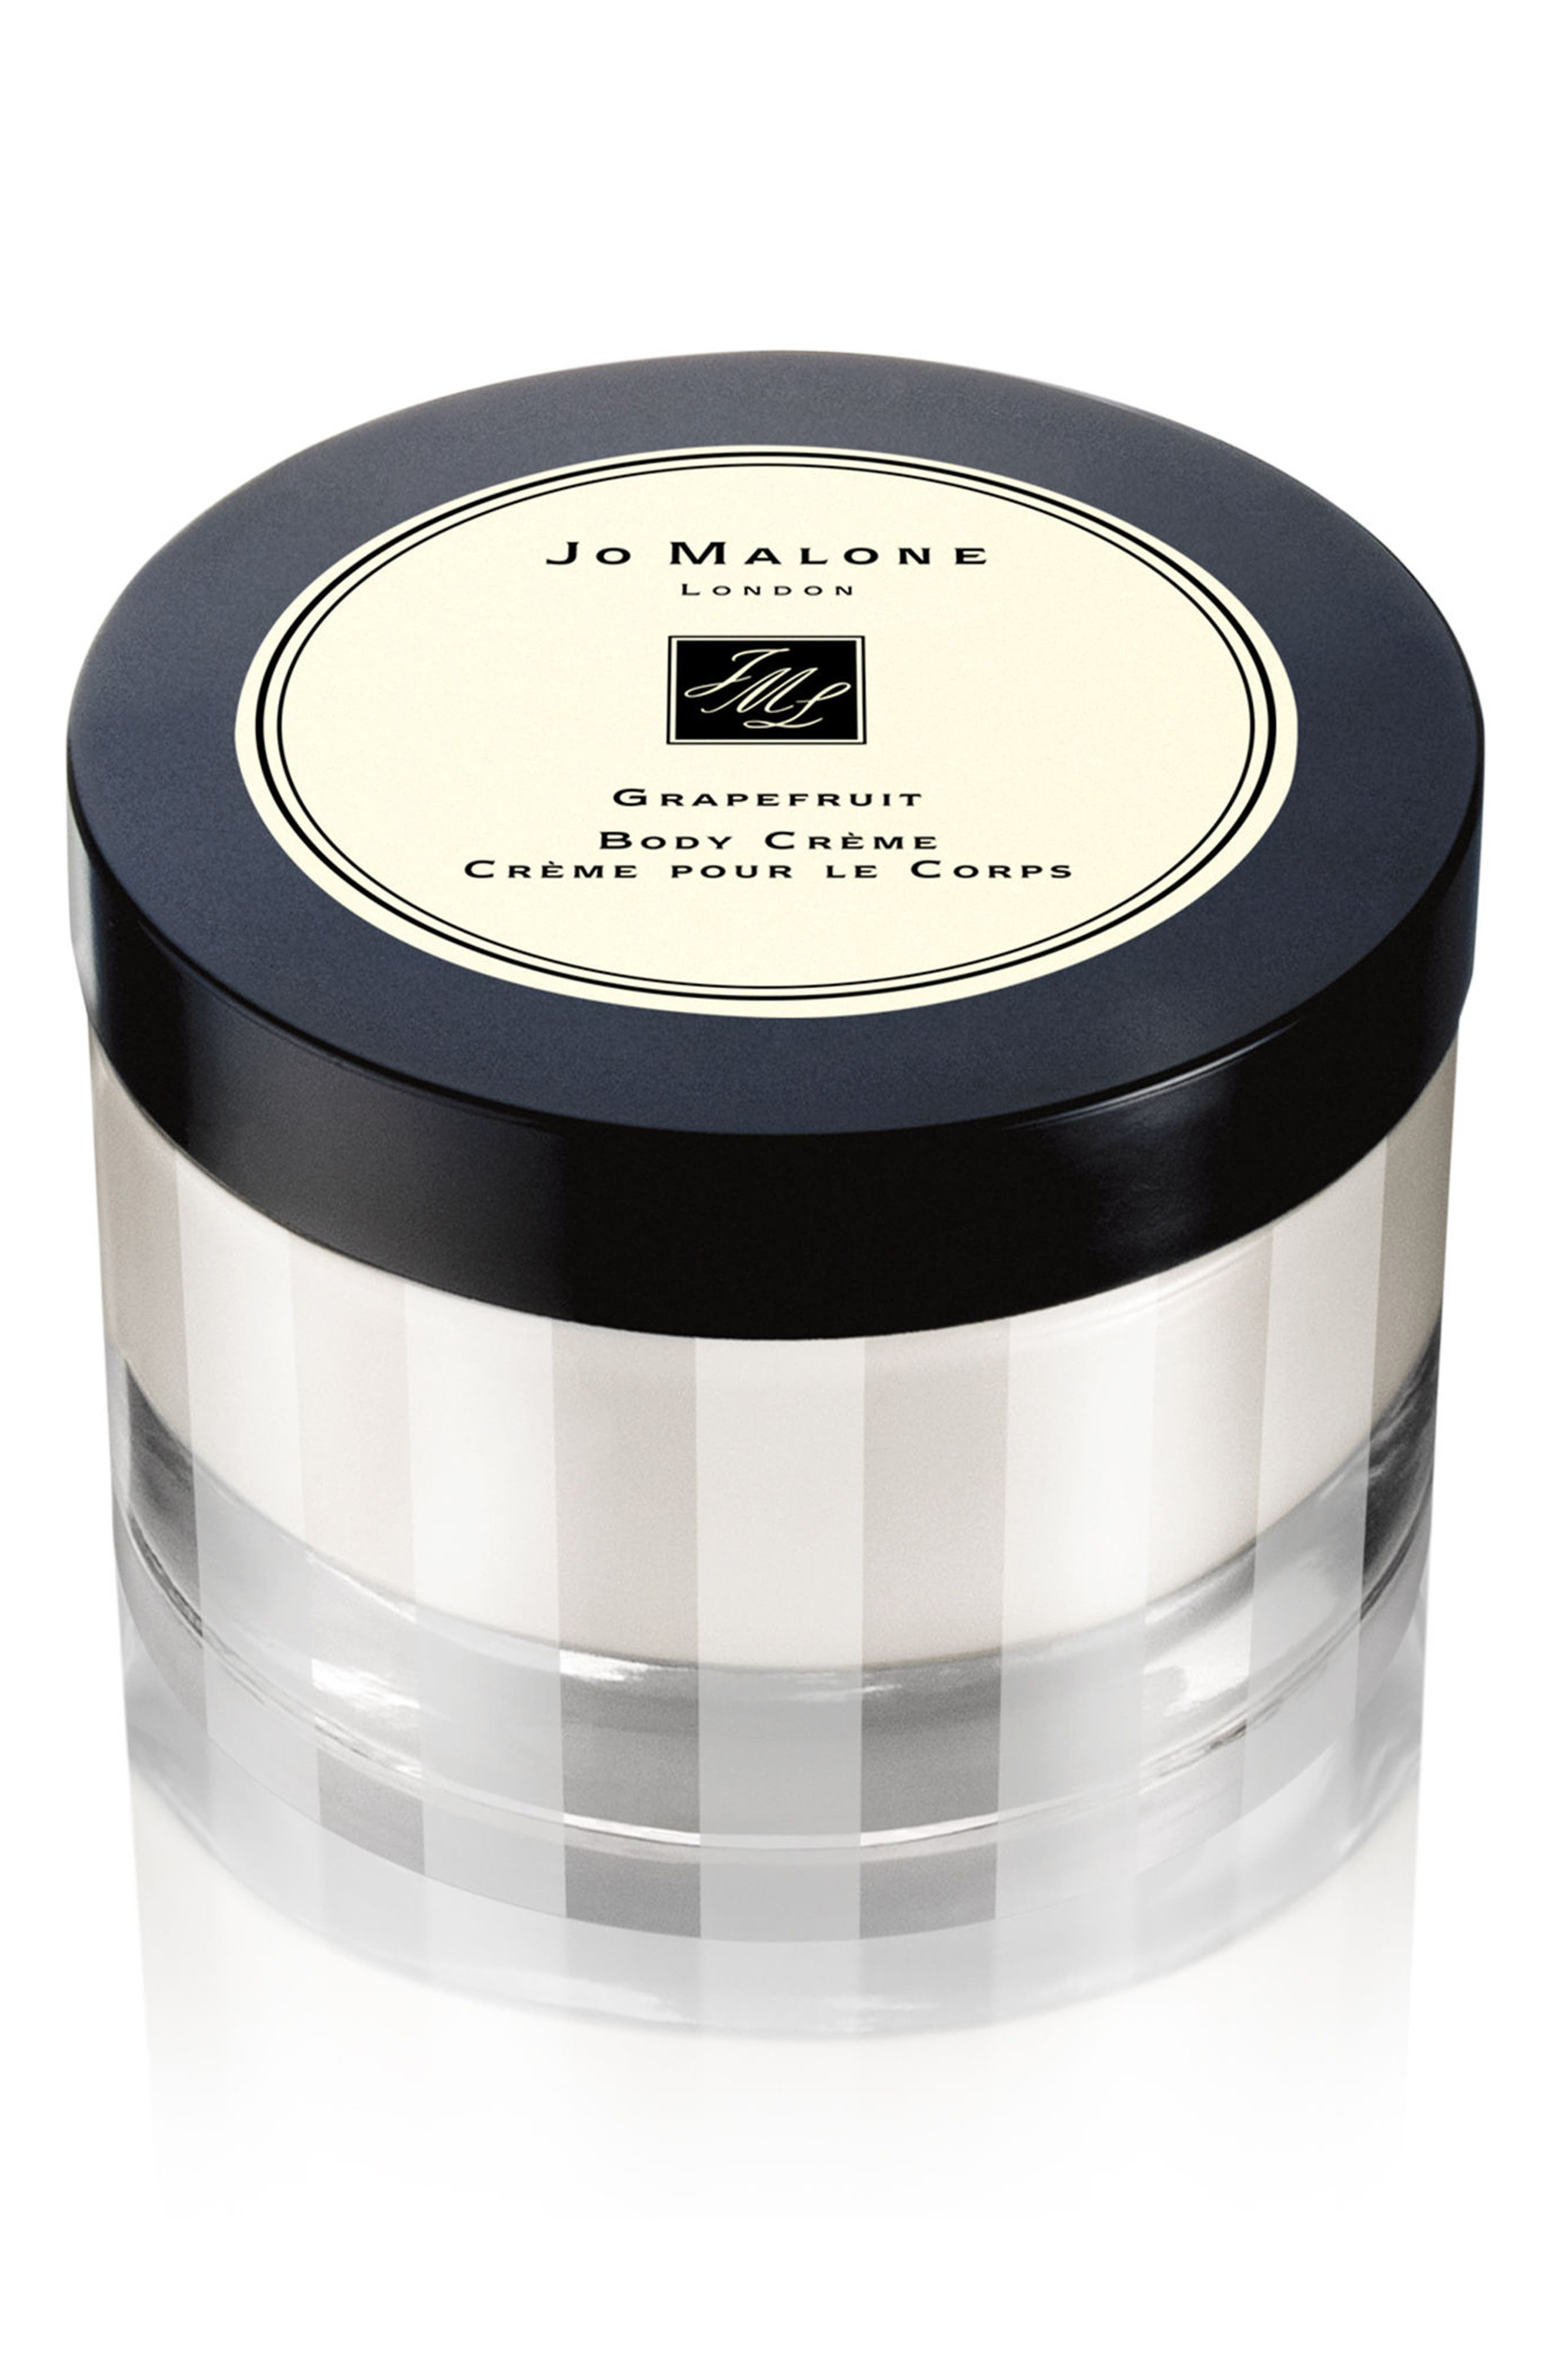 Main Image - Jo Malone London™ Grapefruit Body Crème